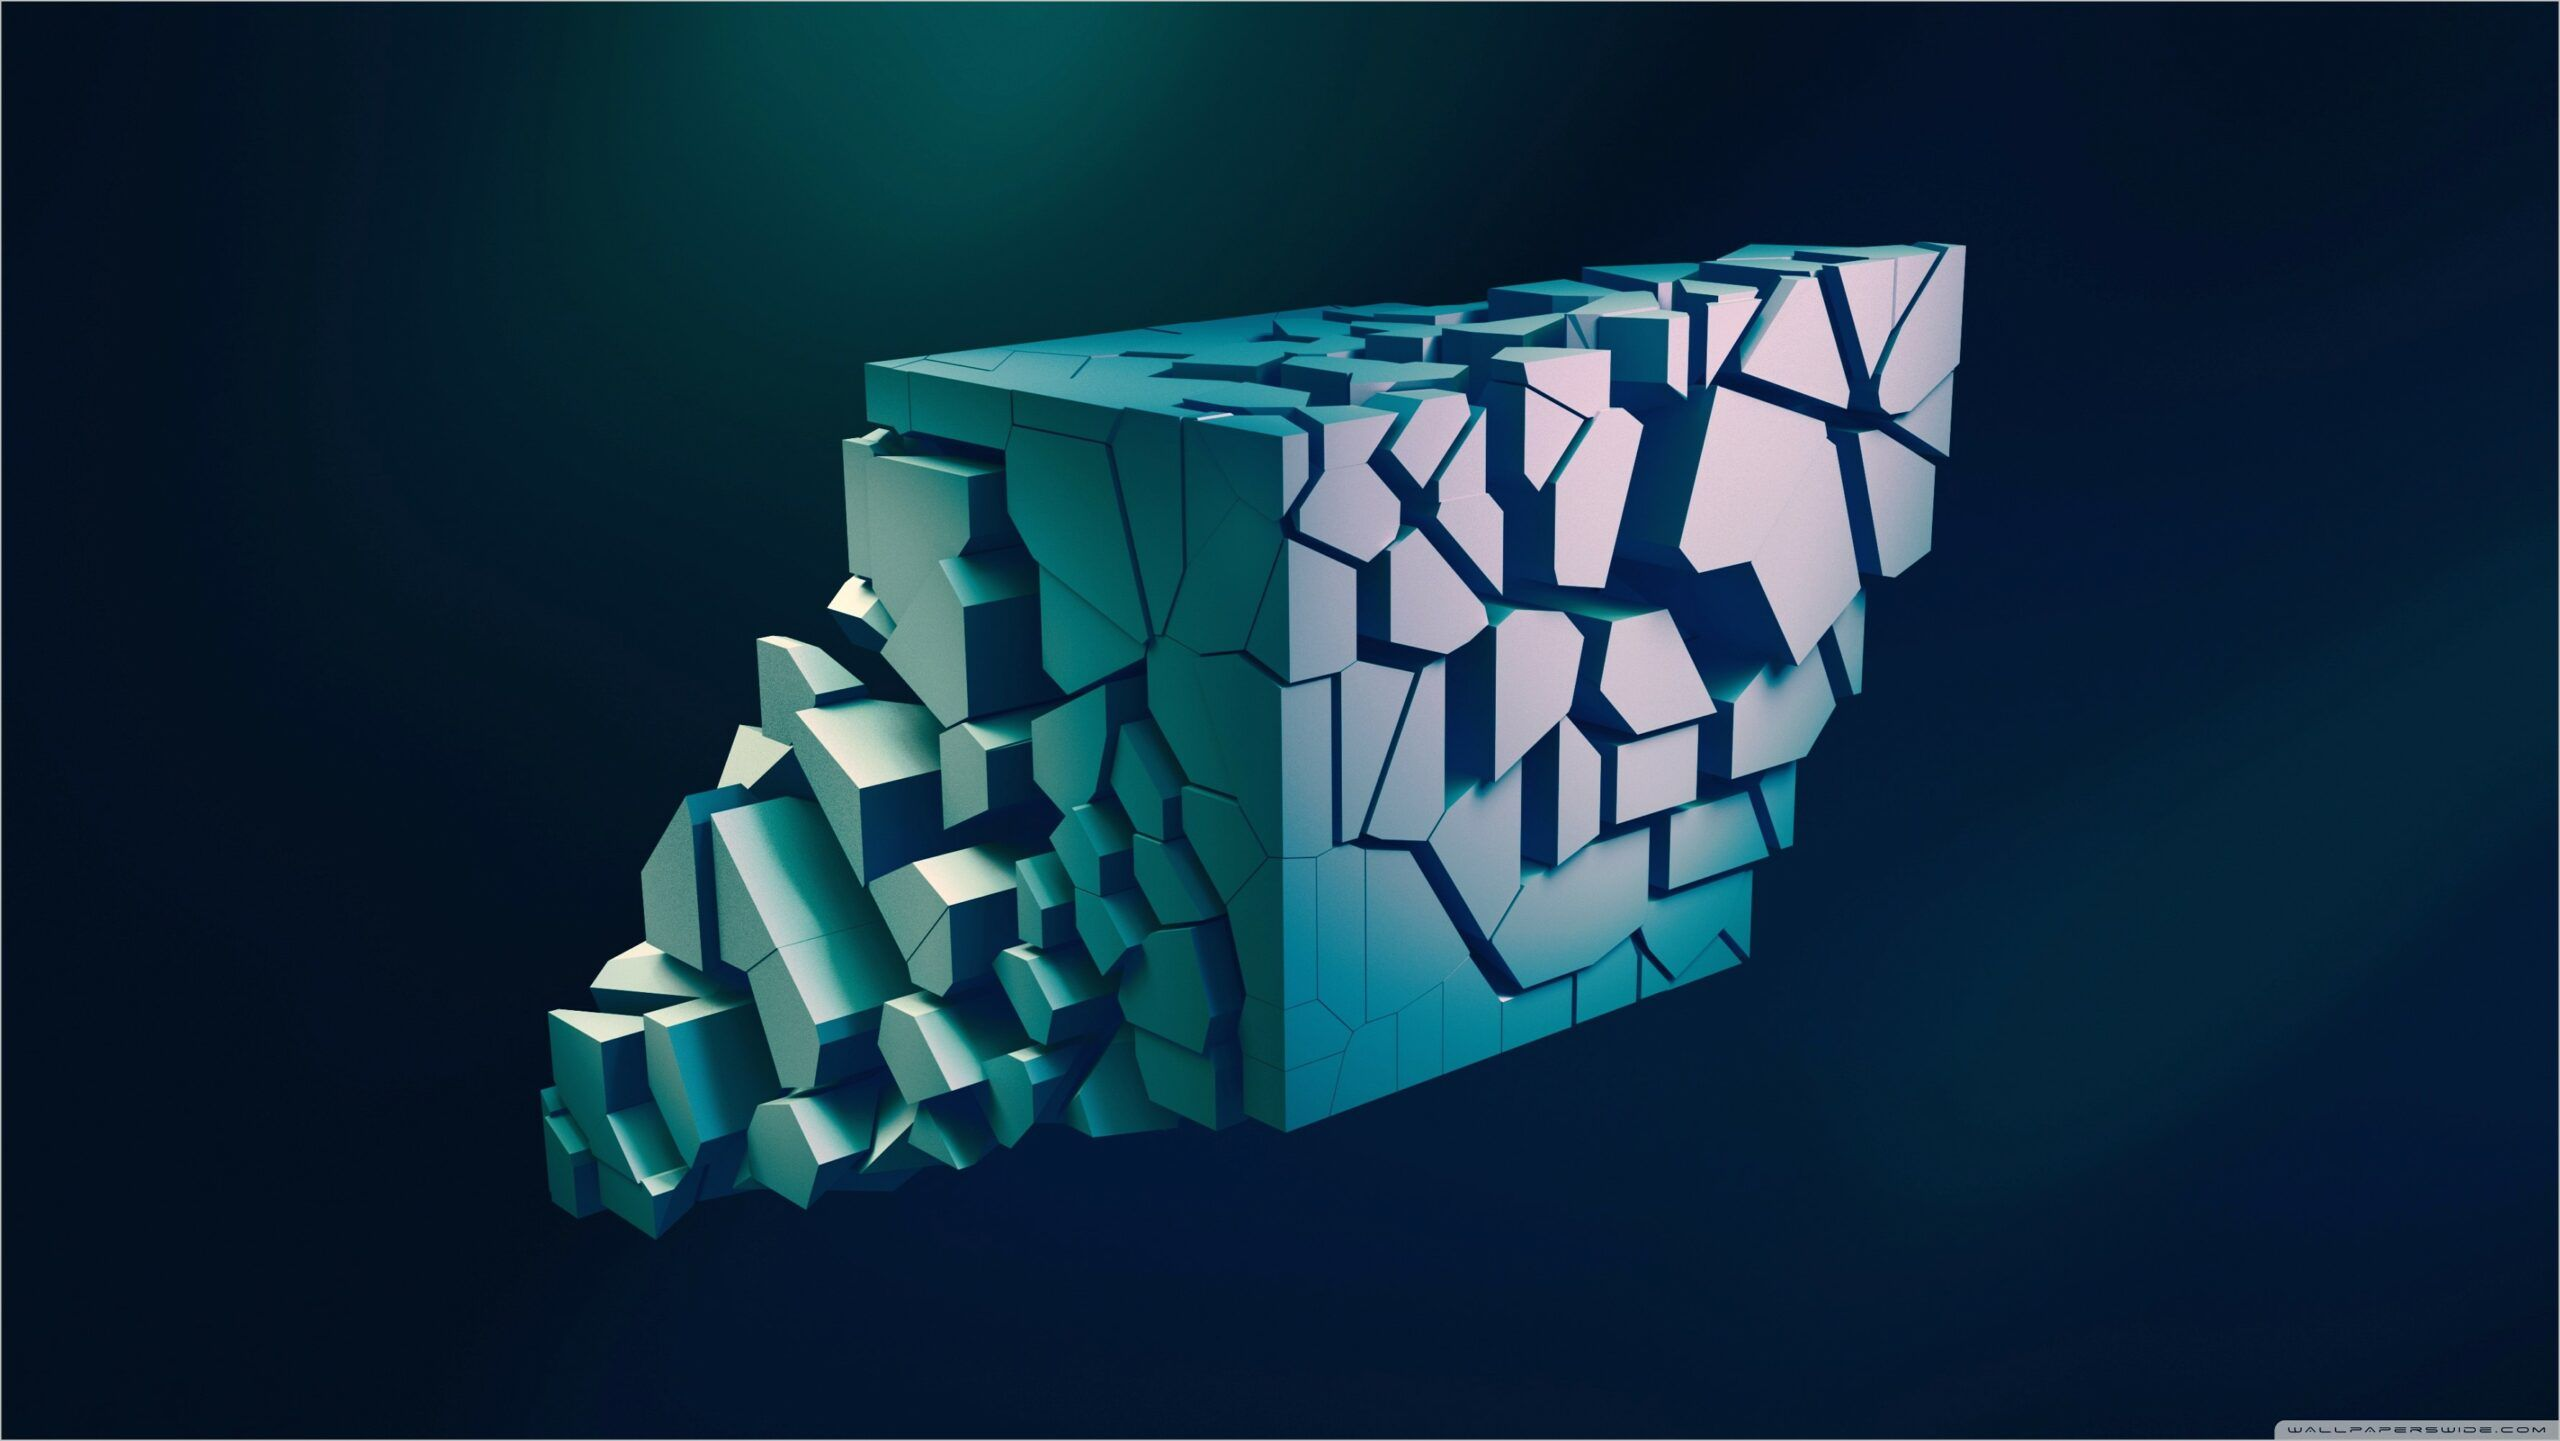 Abstract 3d 4k Wallpaper In 2020 3d Cube Wallpaper Wallpaper Gallery Blue Abstract Art